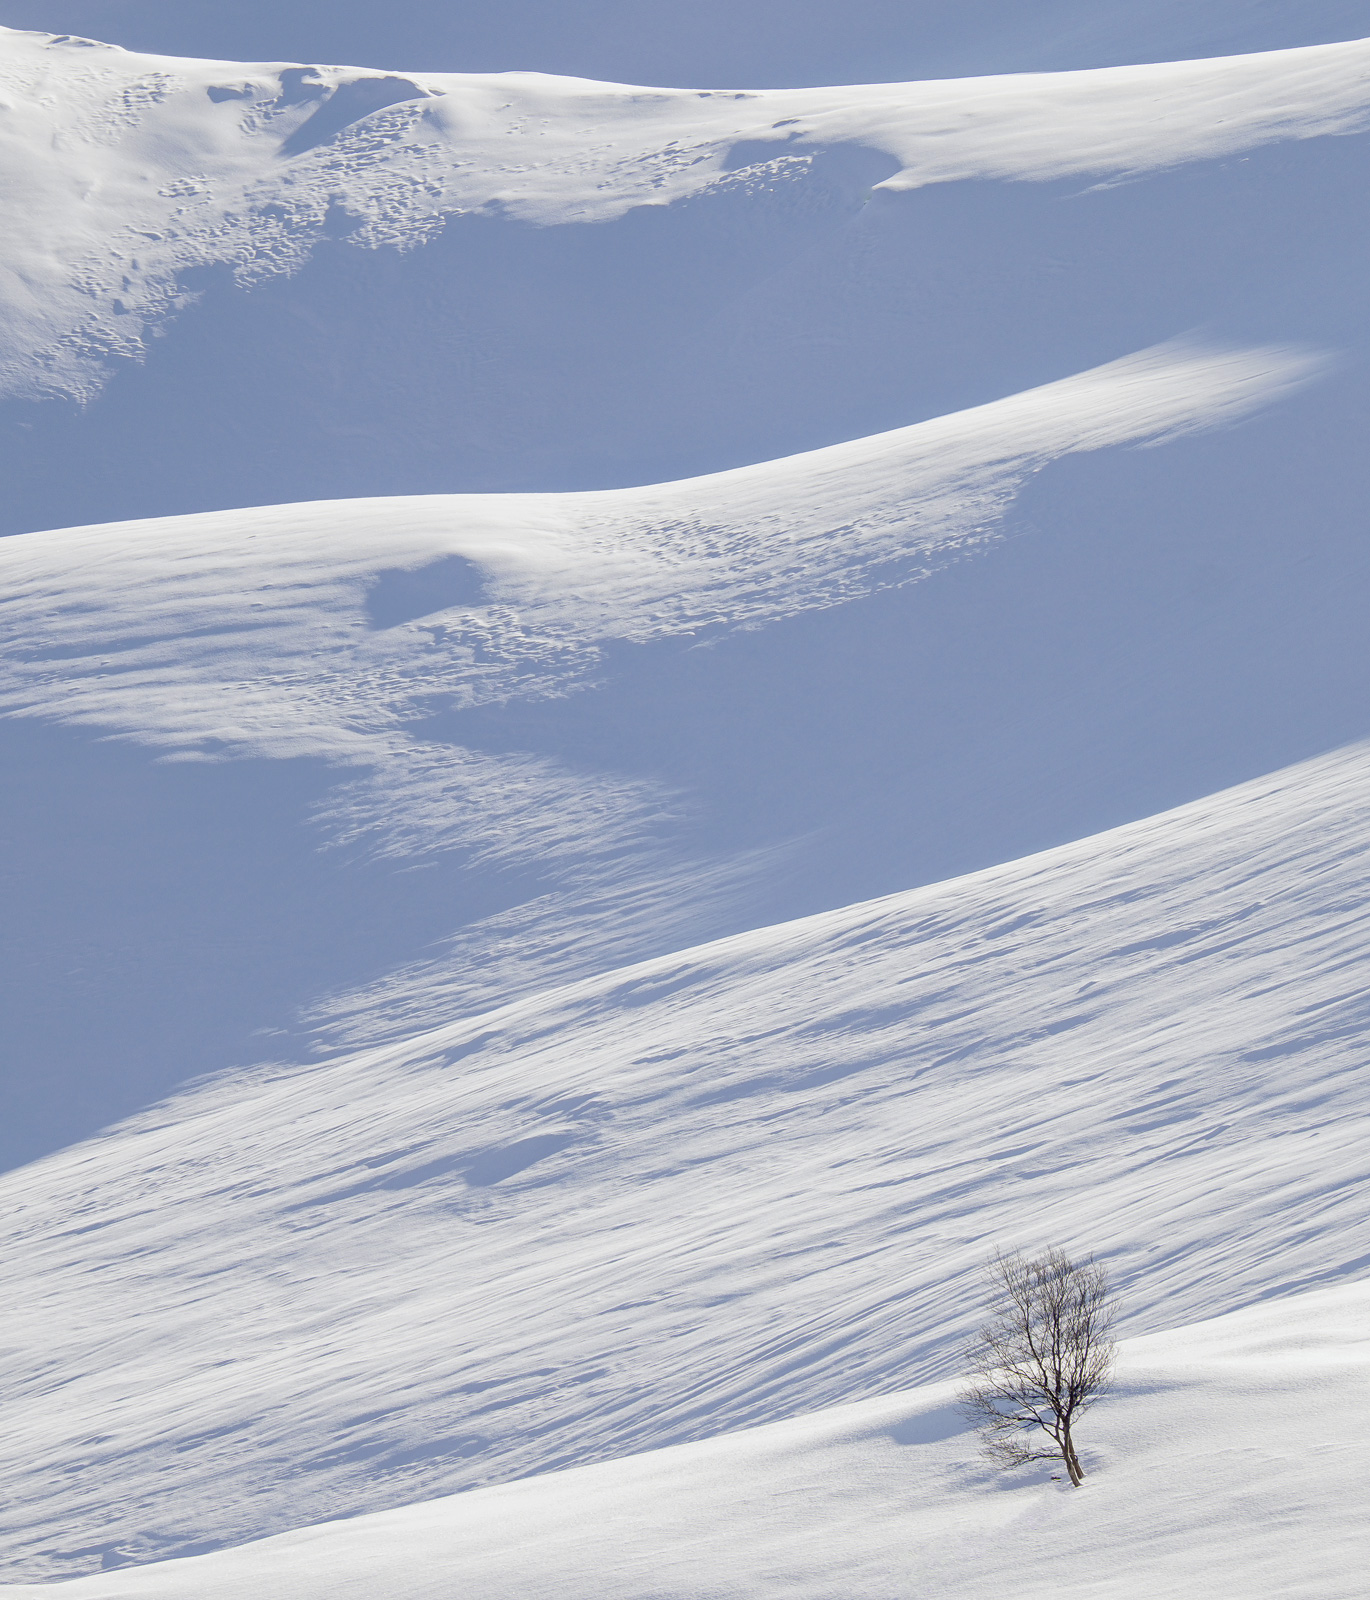 Deep Snow 4, Anderdalan, Senja, Norway, ribbed, blue, shadows, rolling, mounds, snow, flattened, perspective, compressio, photo